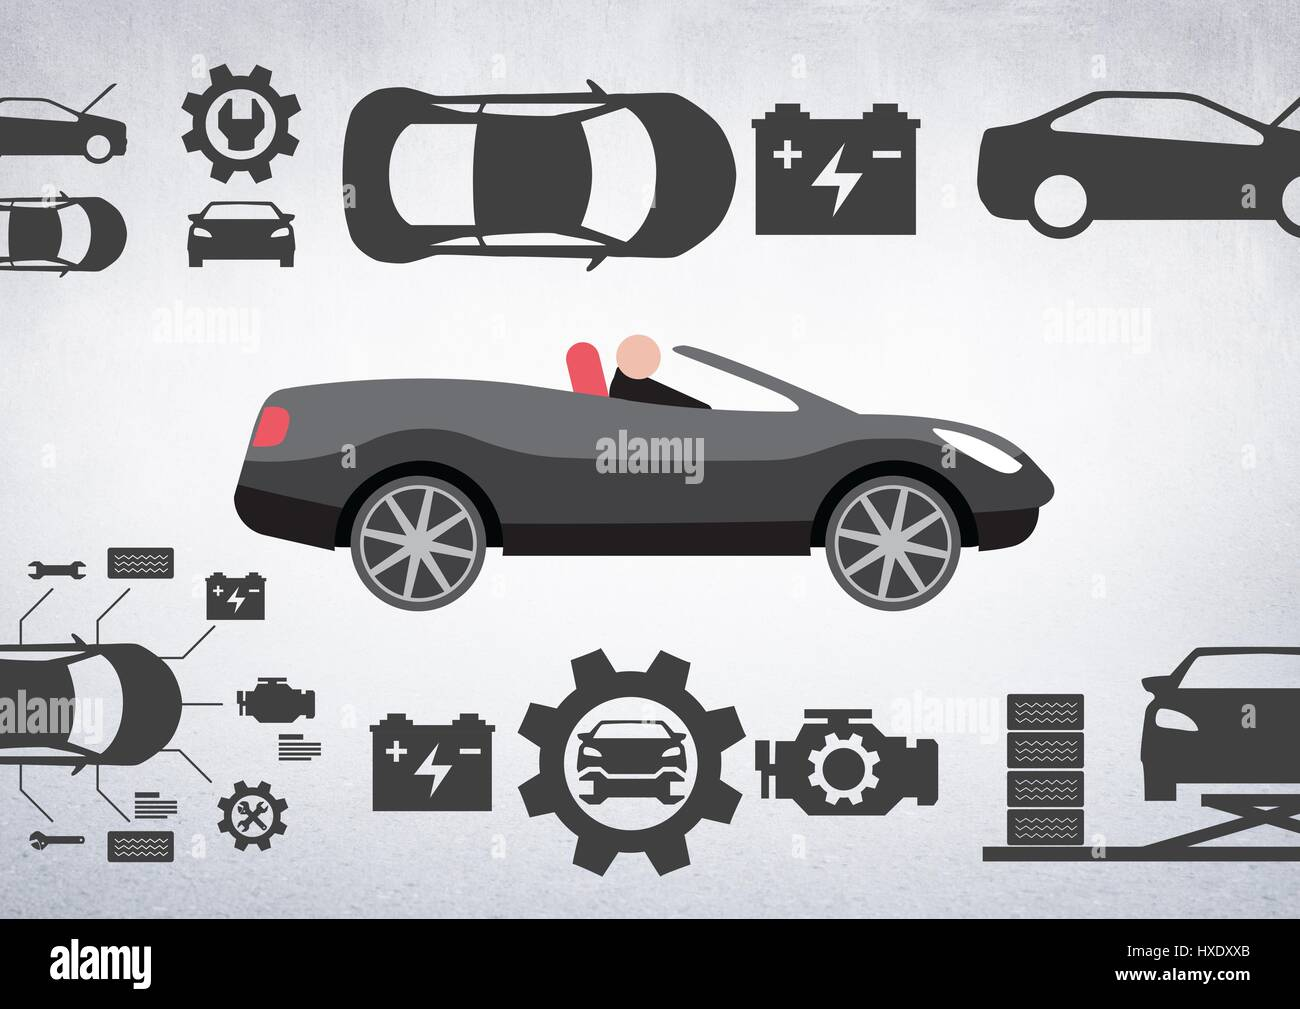 Digital composite of Man in car illustration against white background with car mechanic icons Stock Photo